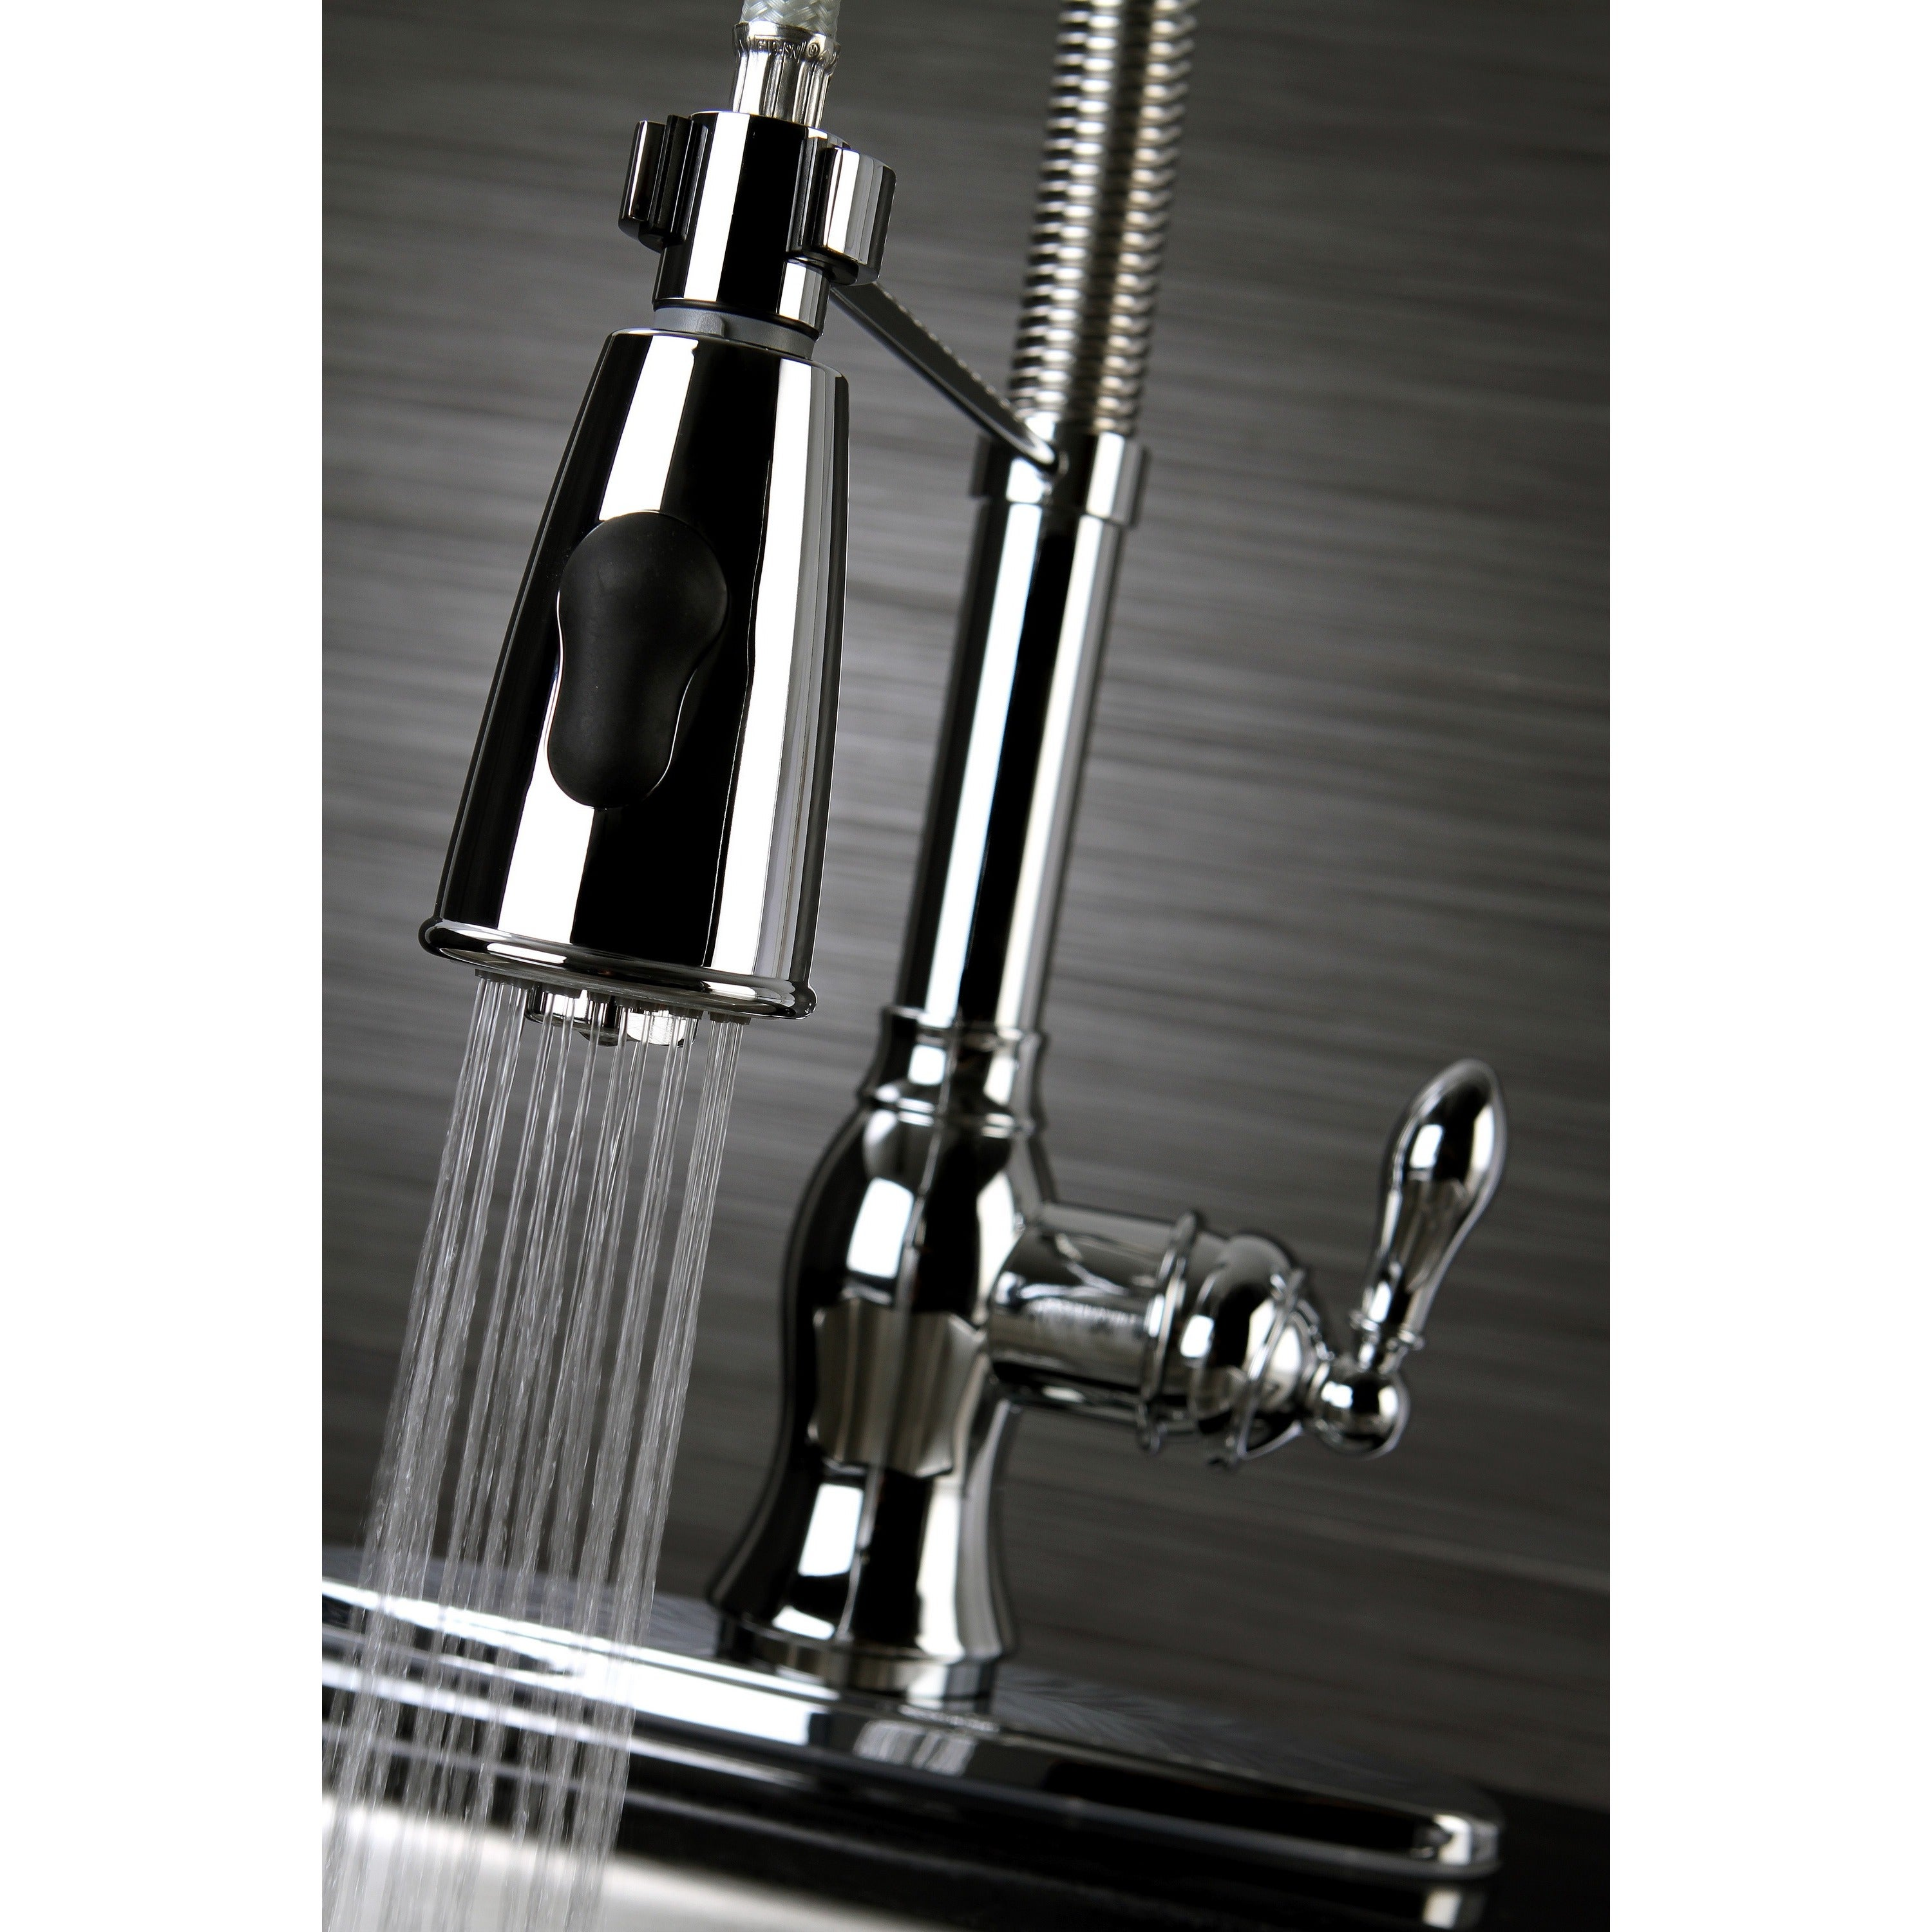 Shop American Classic Modern Chrome Spiral Pull-down Kitchen Faucet ...